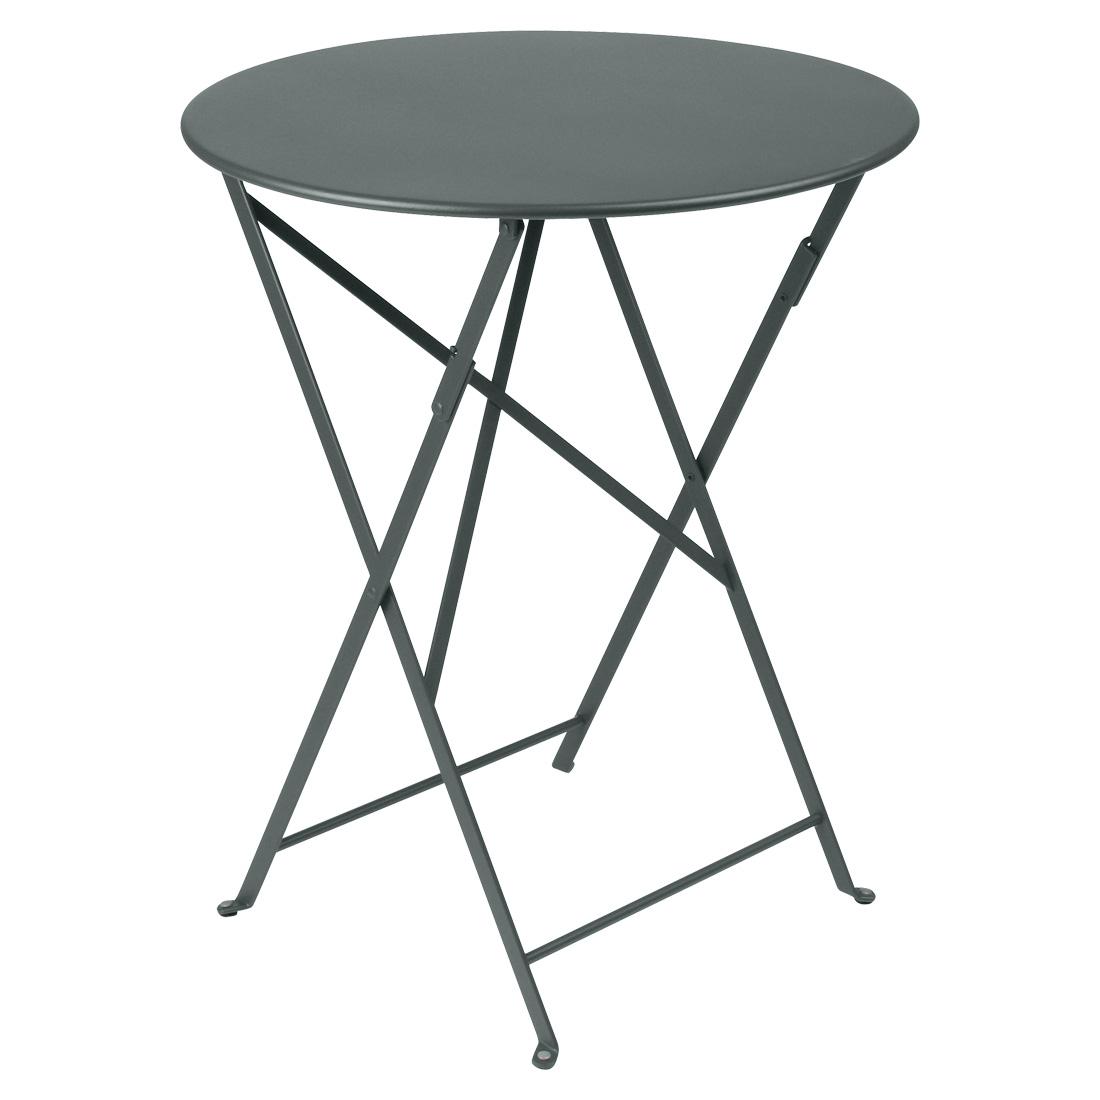 styles table in outdoor cotta top tile home p patio bistro tables terra